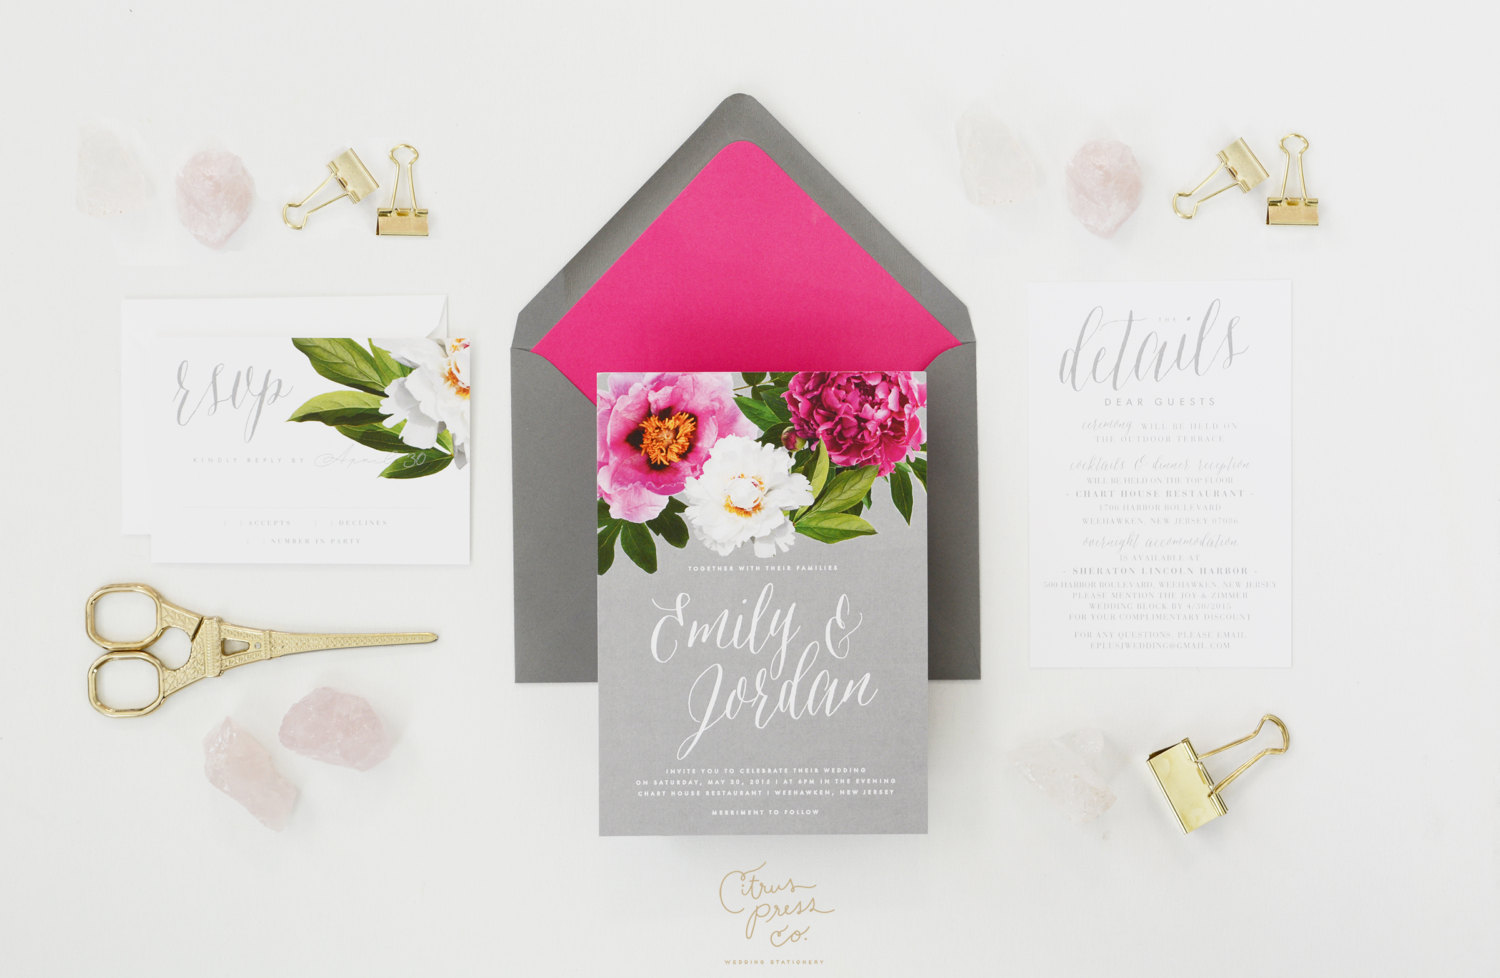 spring peony wedding invitations | 6 Floral Botanical Invitations for Spring Weddings http://wp.me/p1g0if-yOx by Citrus Press Co.